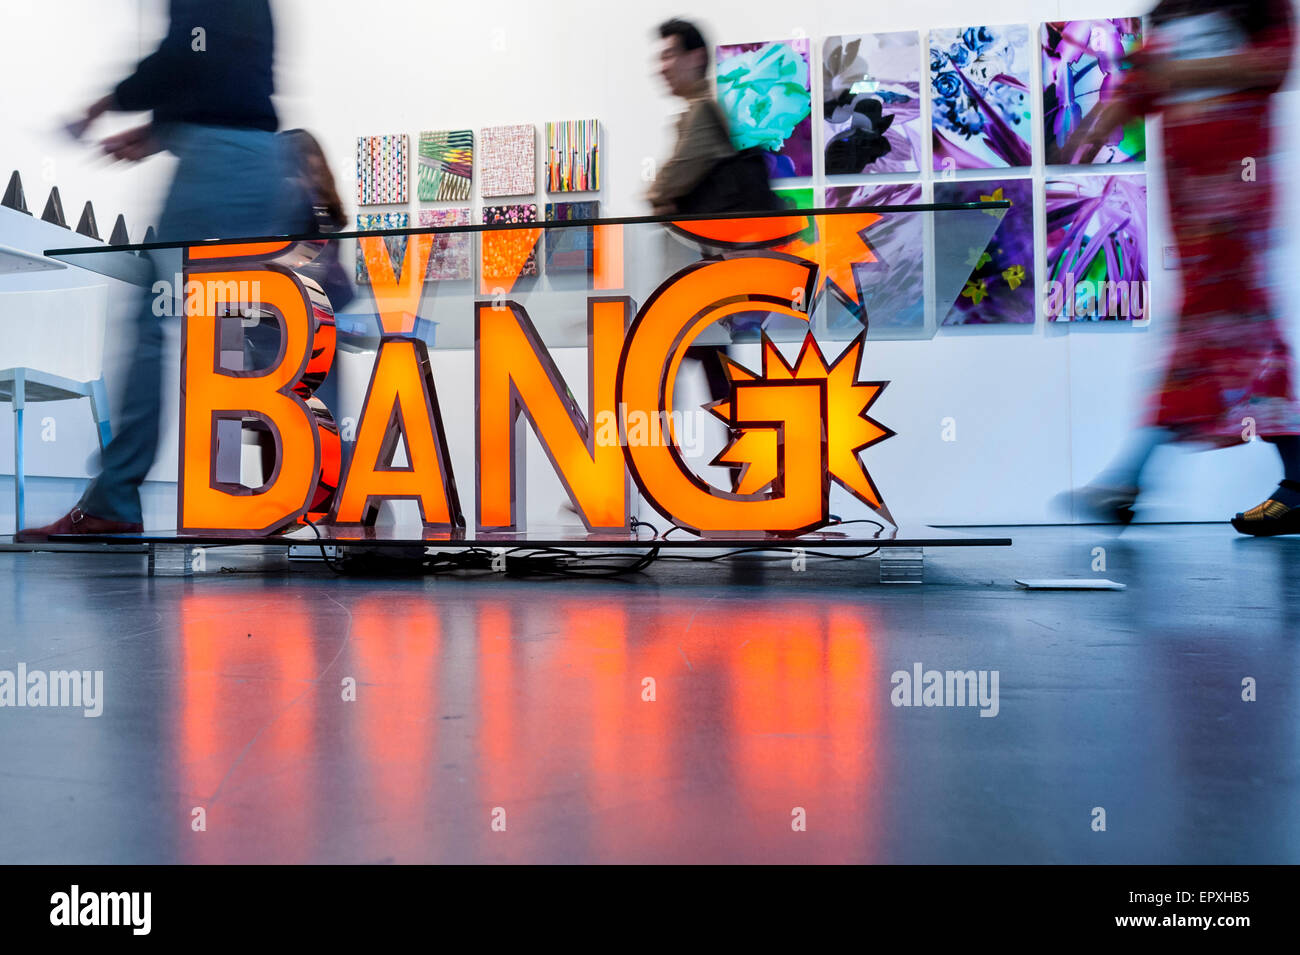 London, UK. 22 May 2015. Visitors walk by 'Bang' by Reinier Bosch at Art15, a global art fair currently - Stock Image